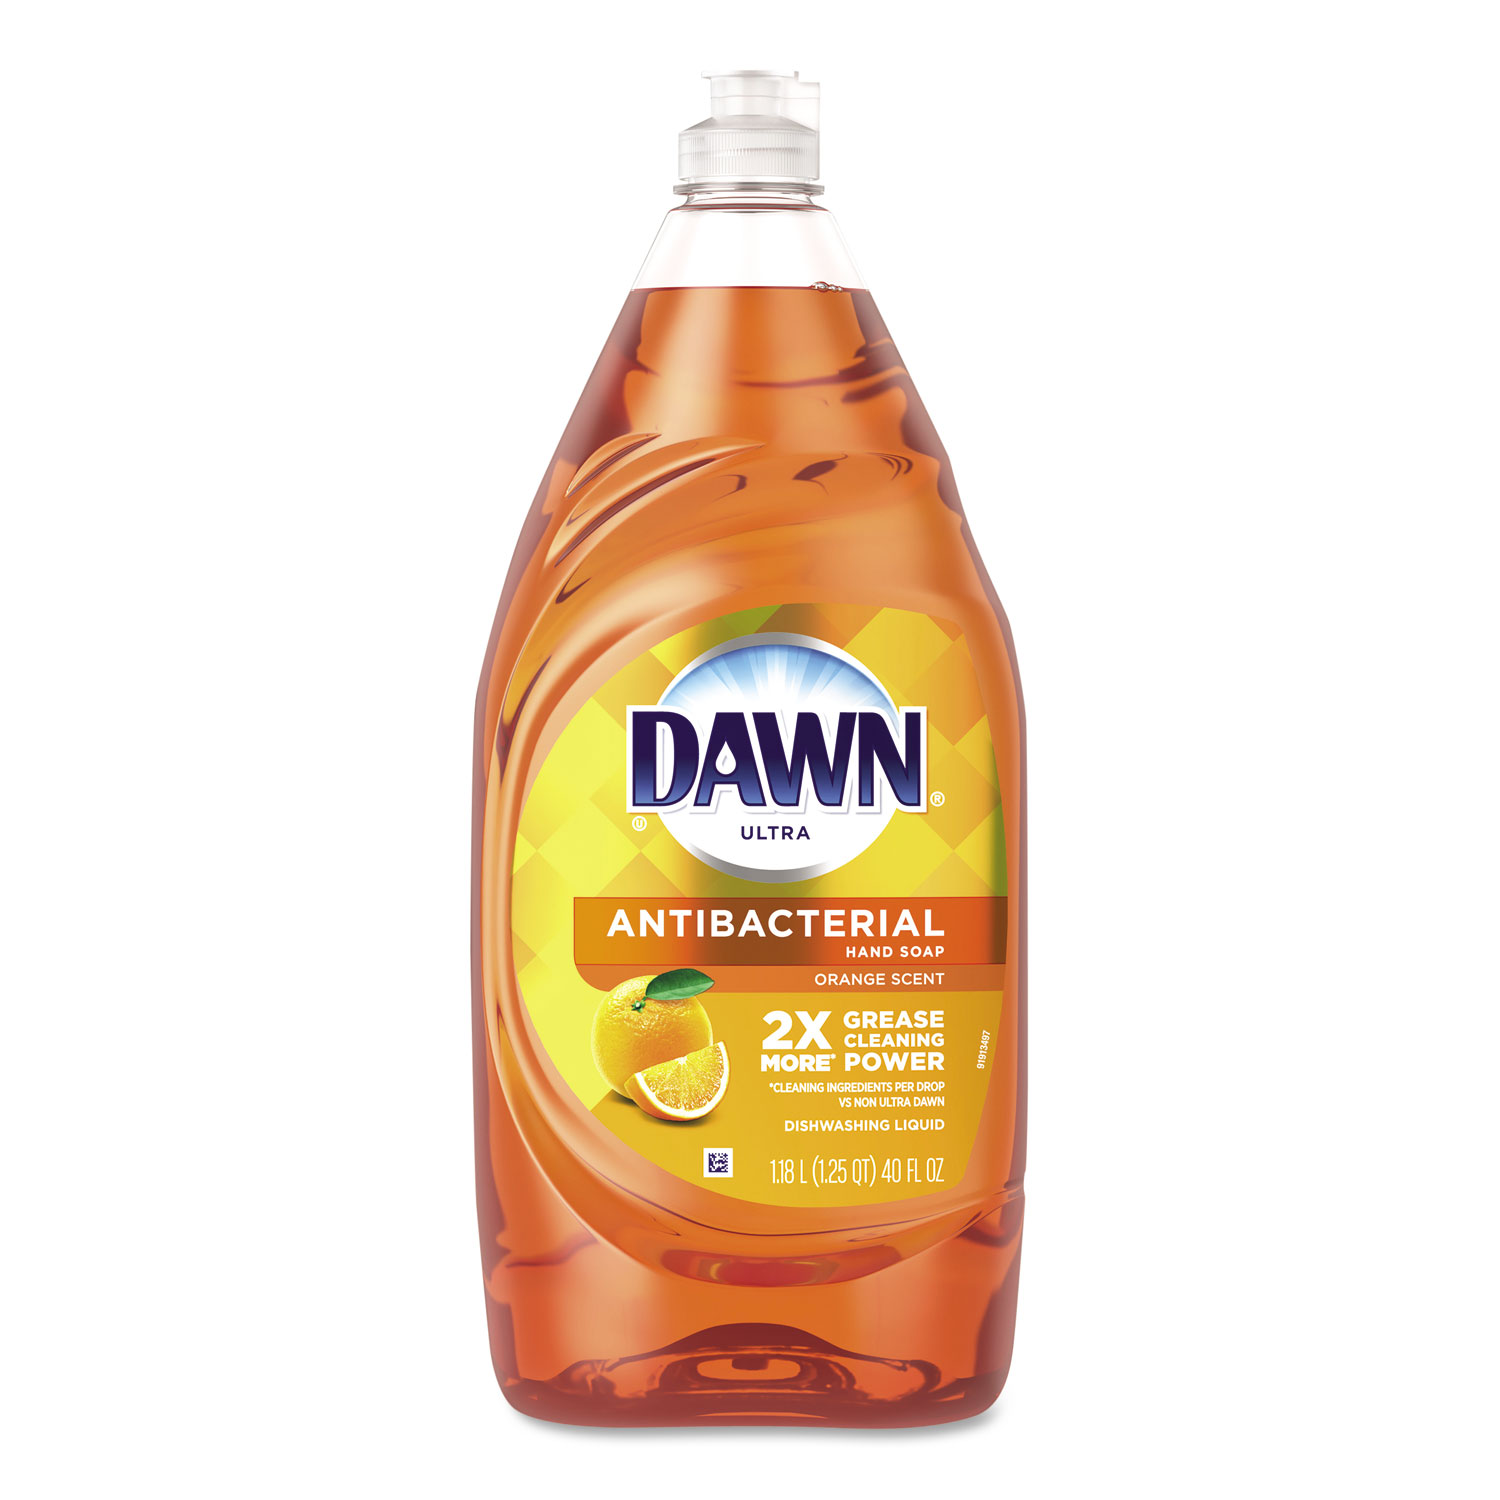 Dawn Ultra Antibacterial Dishwashing Liquid, Orange, 40 oz Bottle